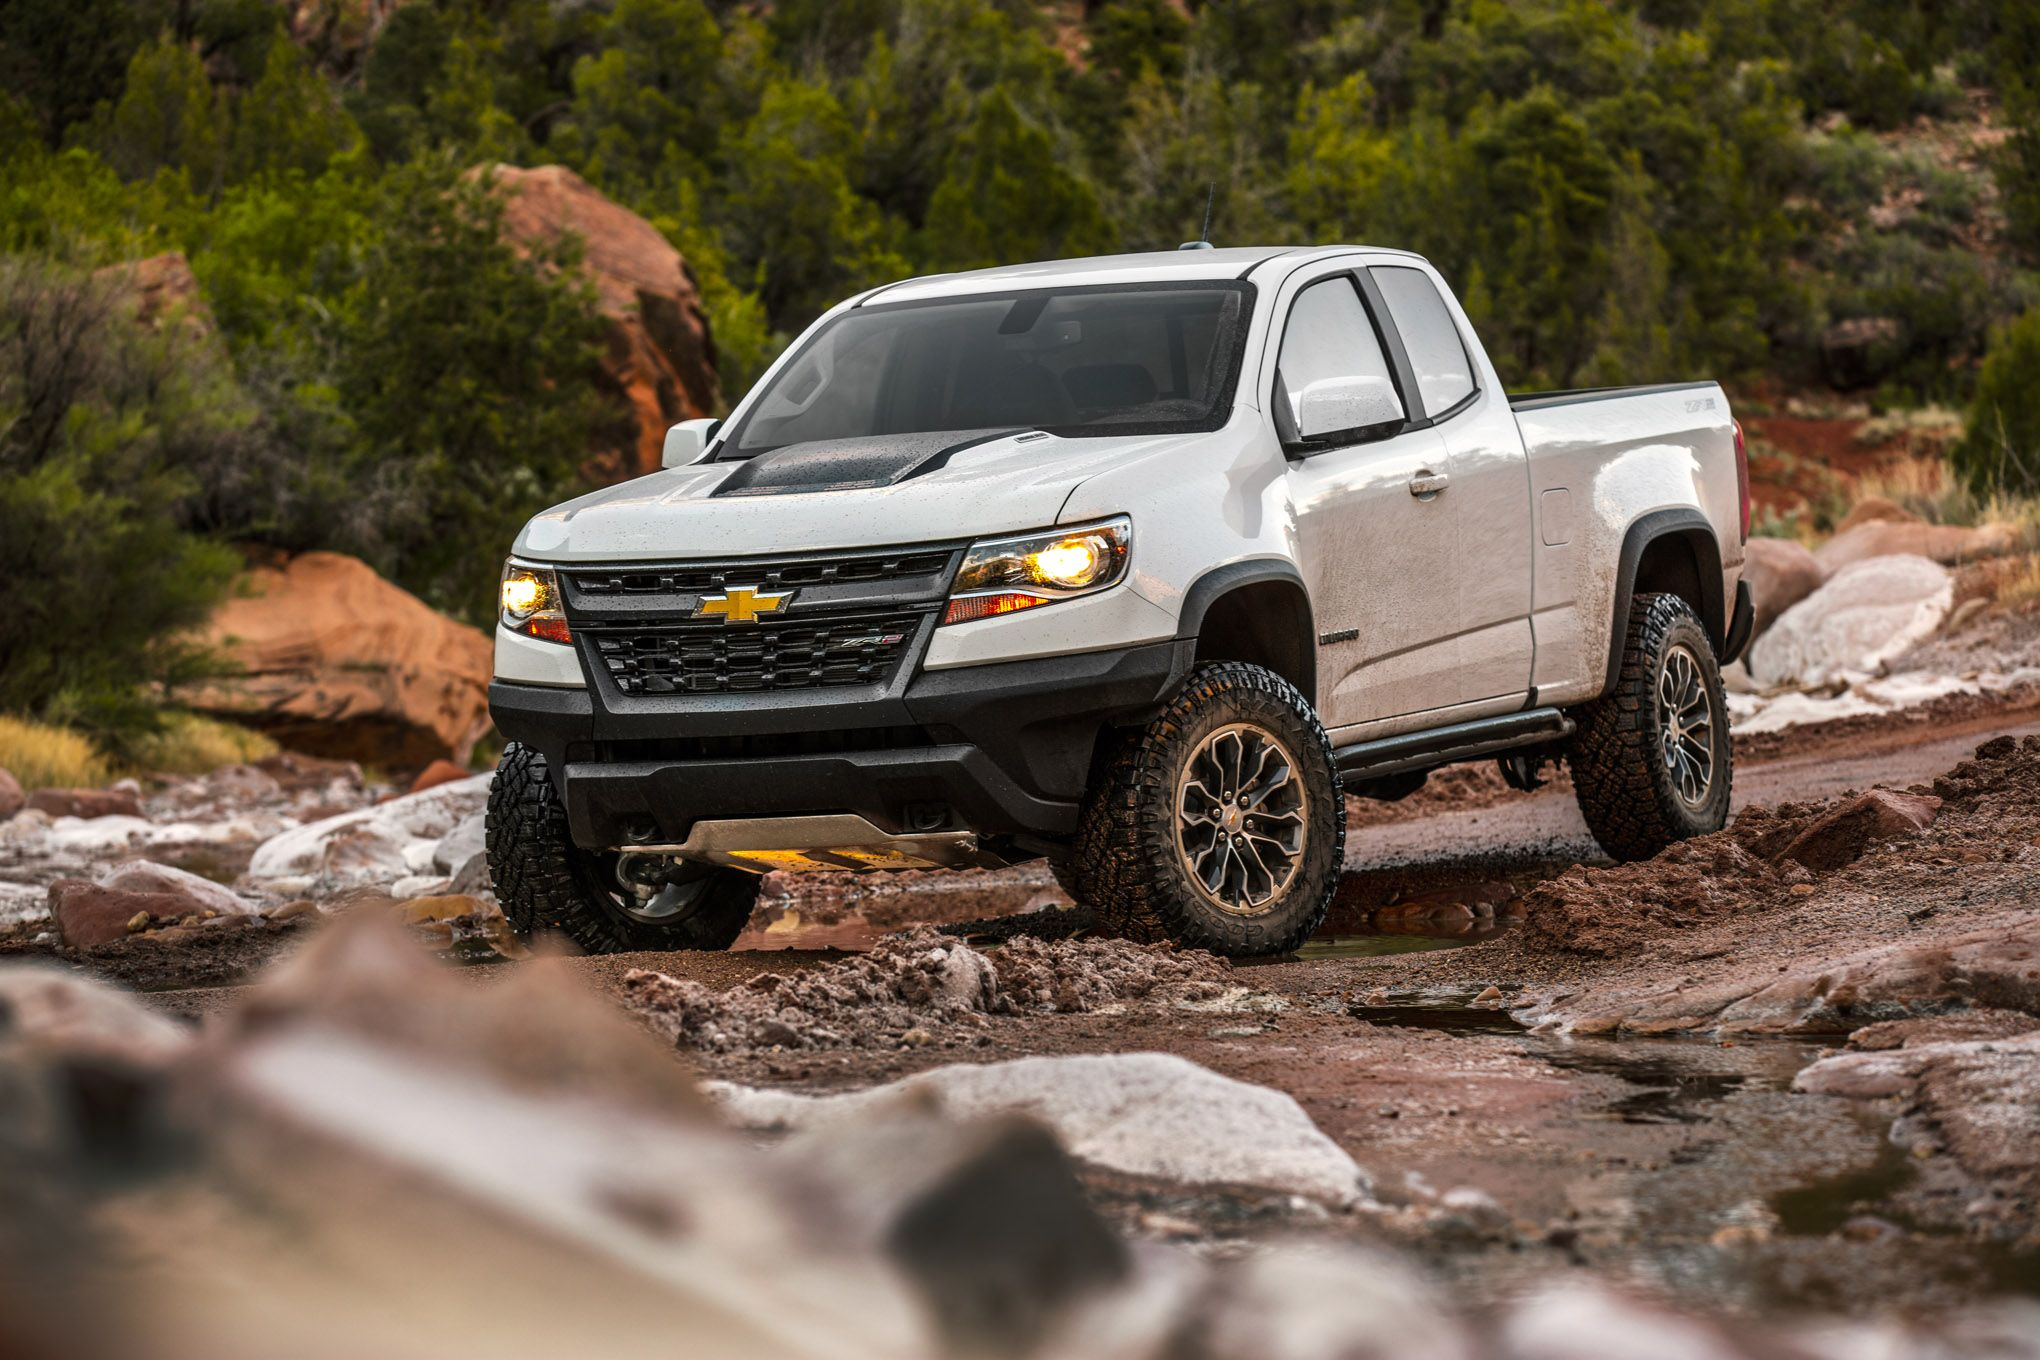 White Chevy Colorado offroad